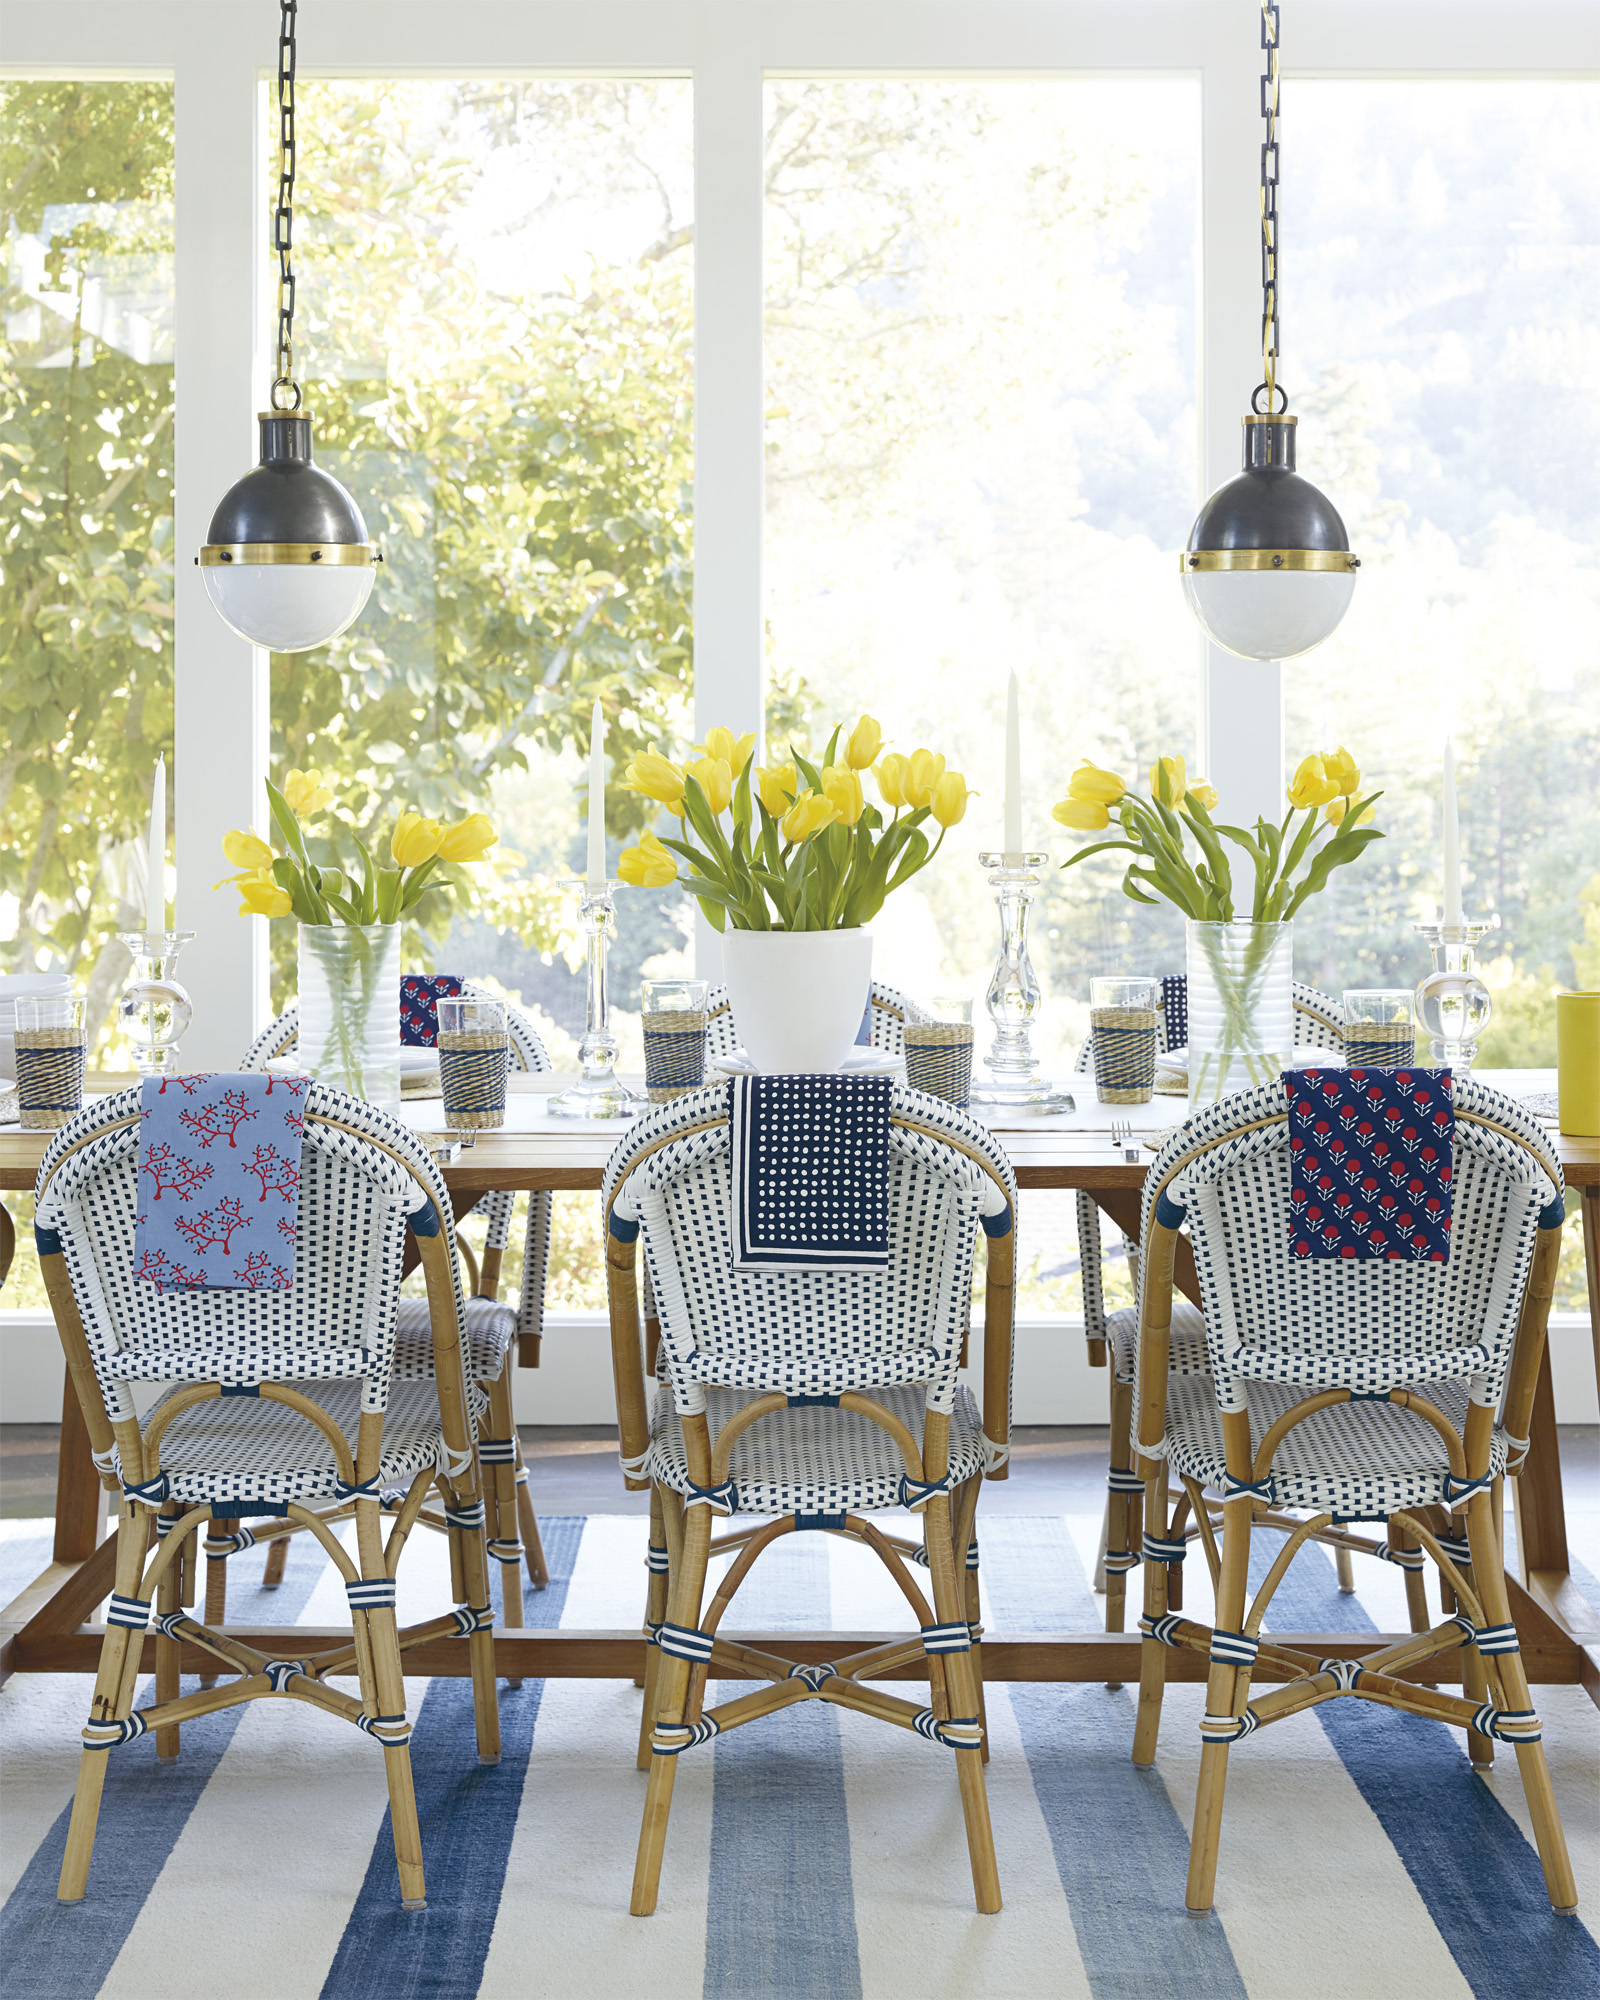 Riviera Side Chair - Gorgeous Coastal Dining Room!